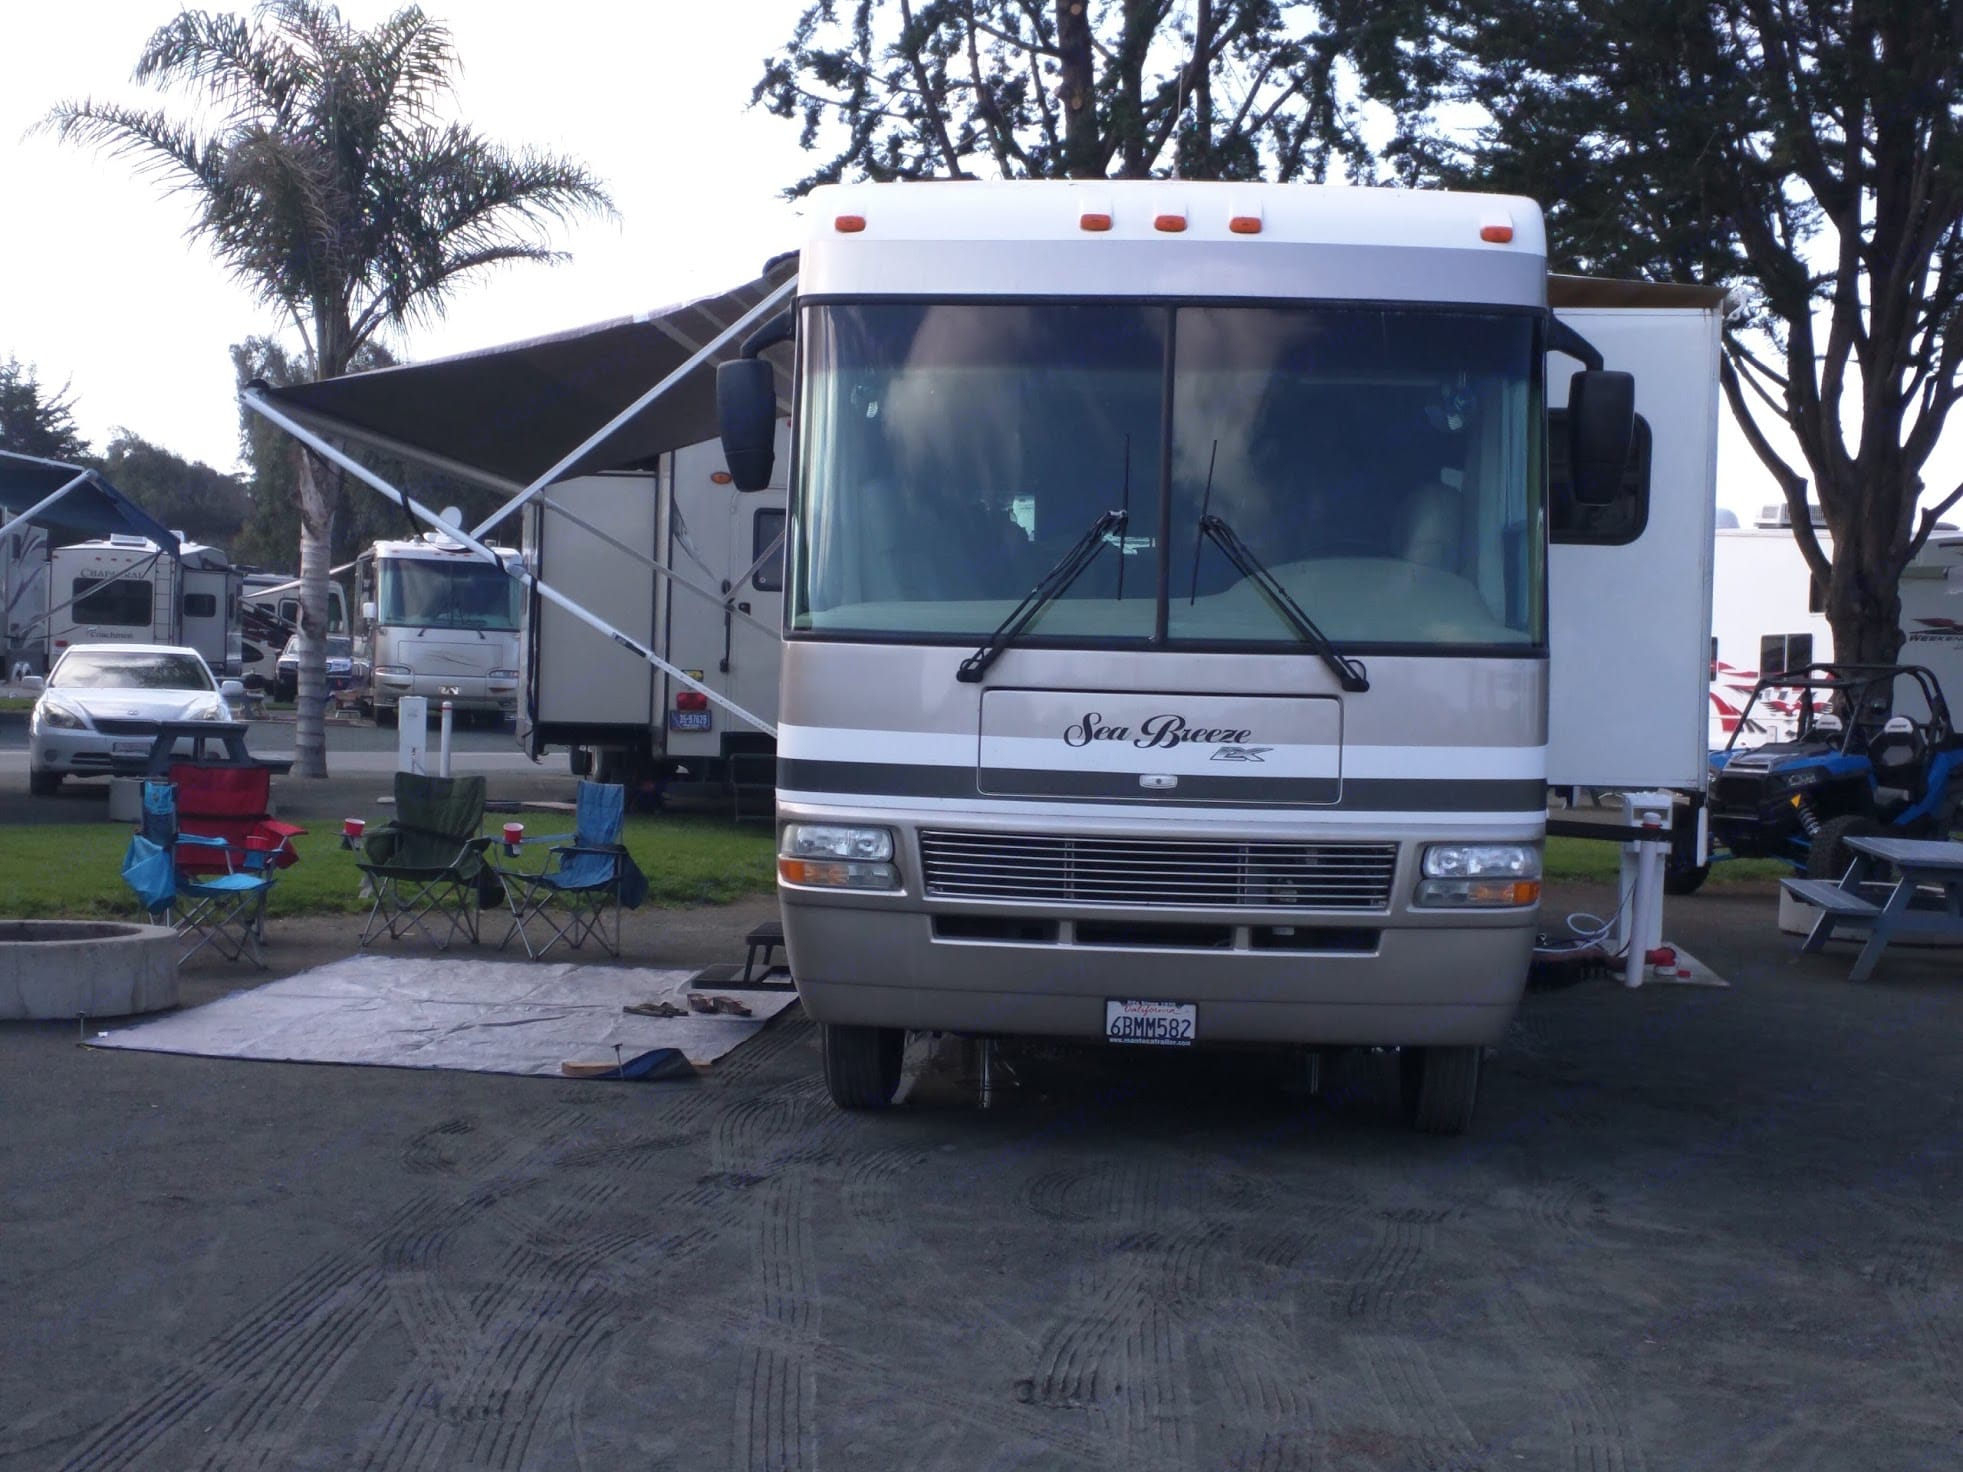 RV at rest. National Sea Breeze 2007